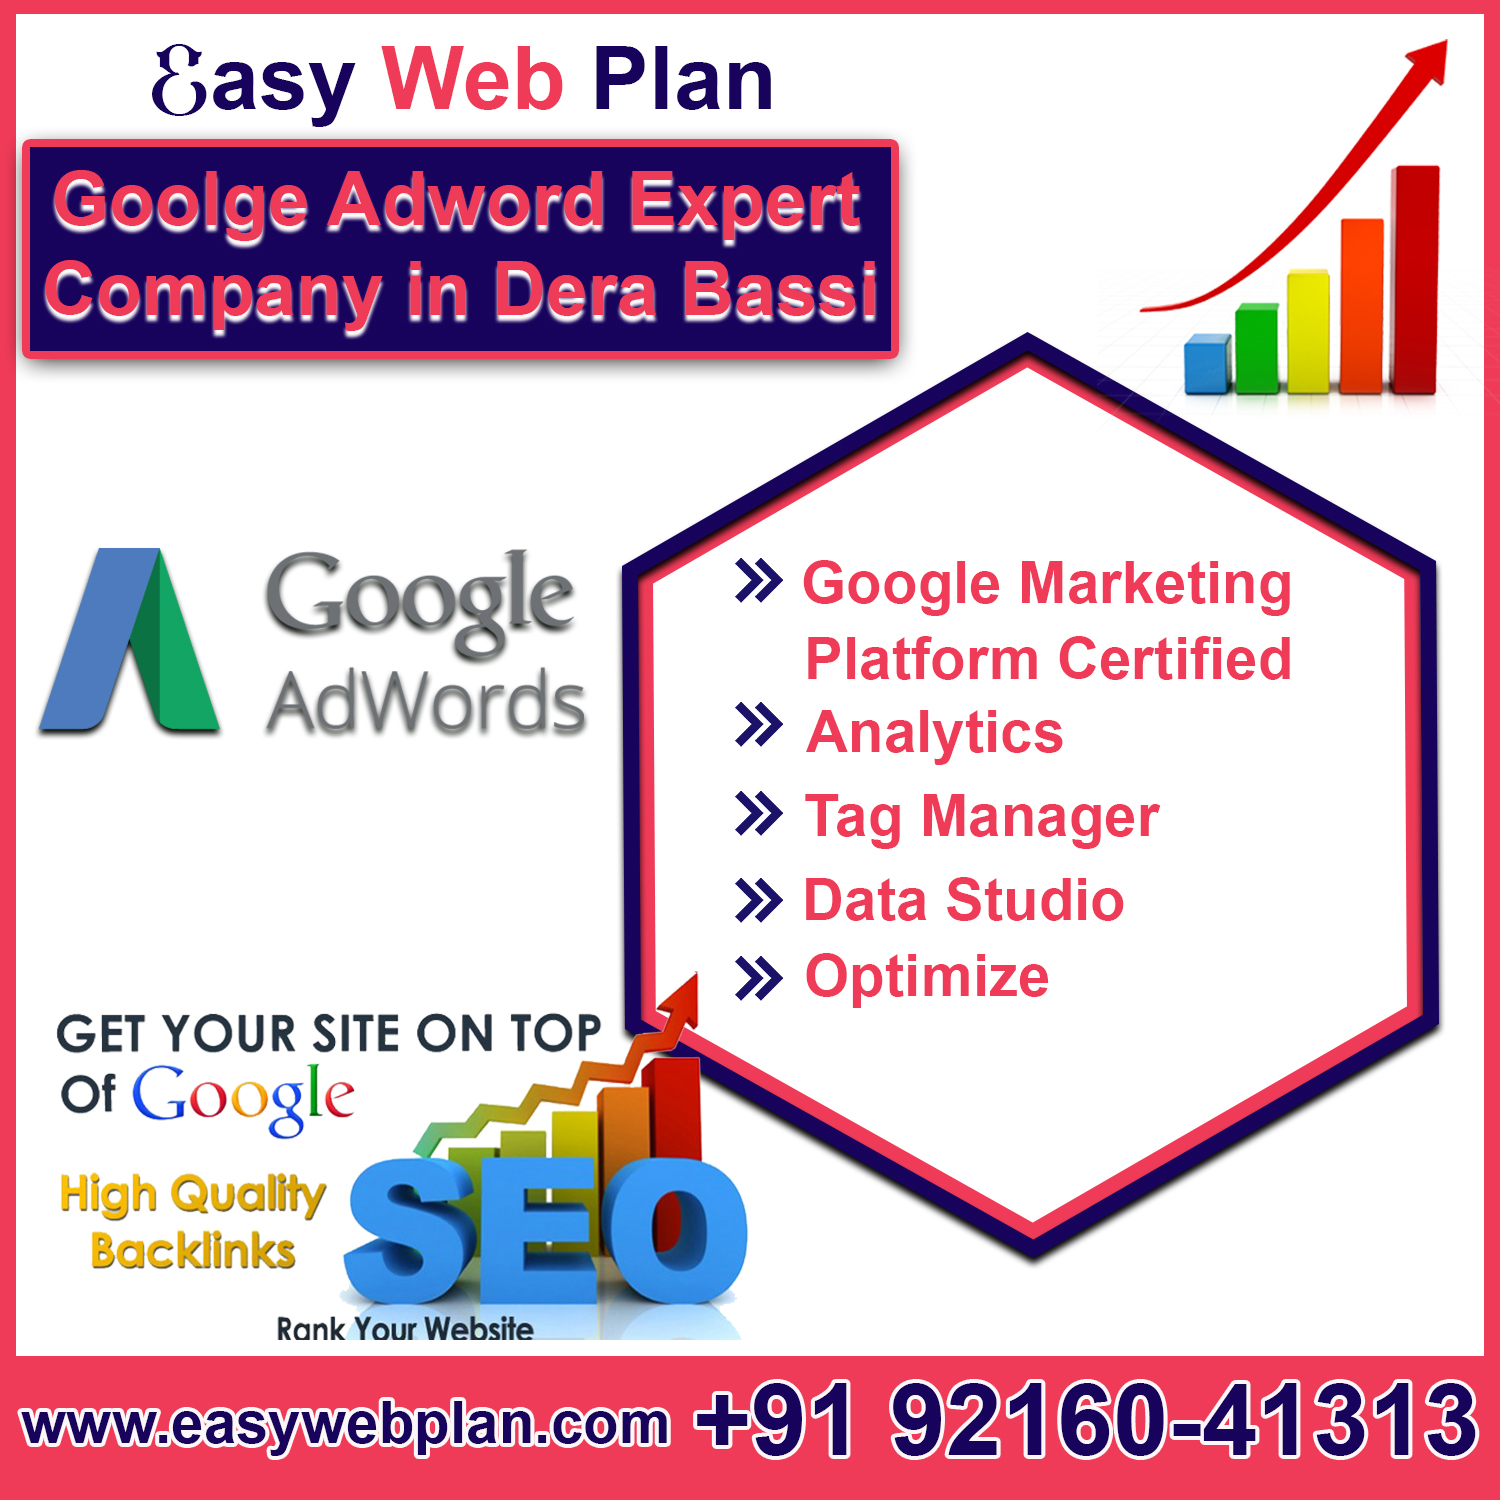 Google Adwords Expert in Derabassi